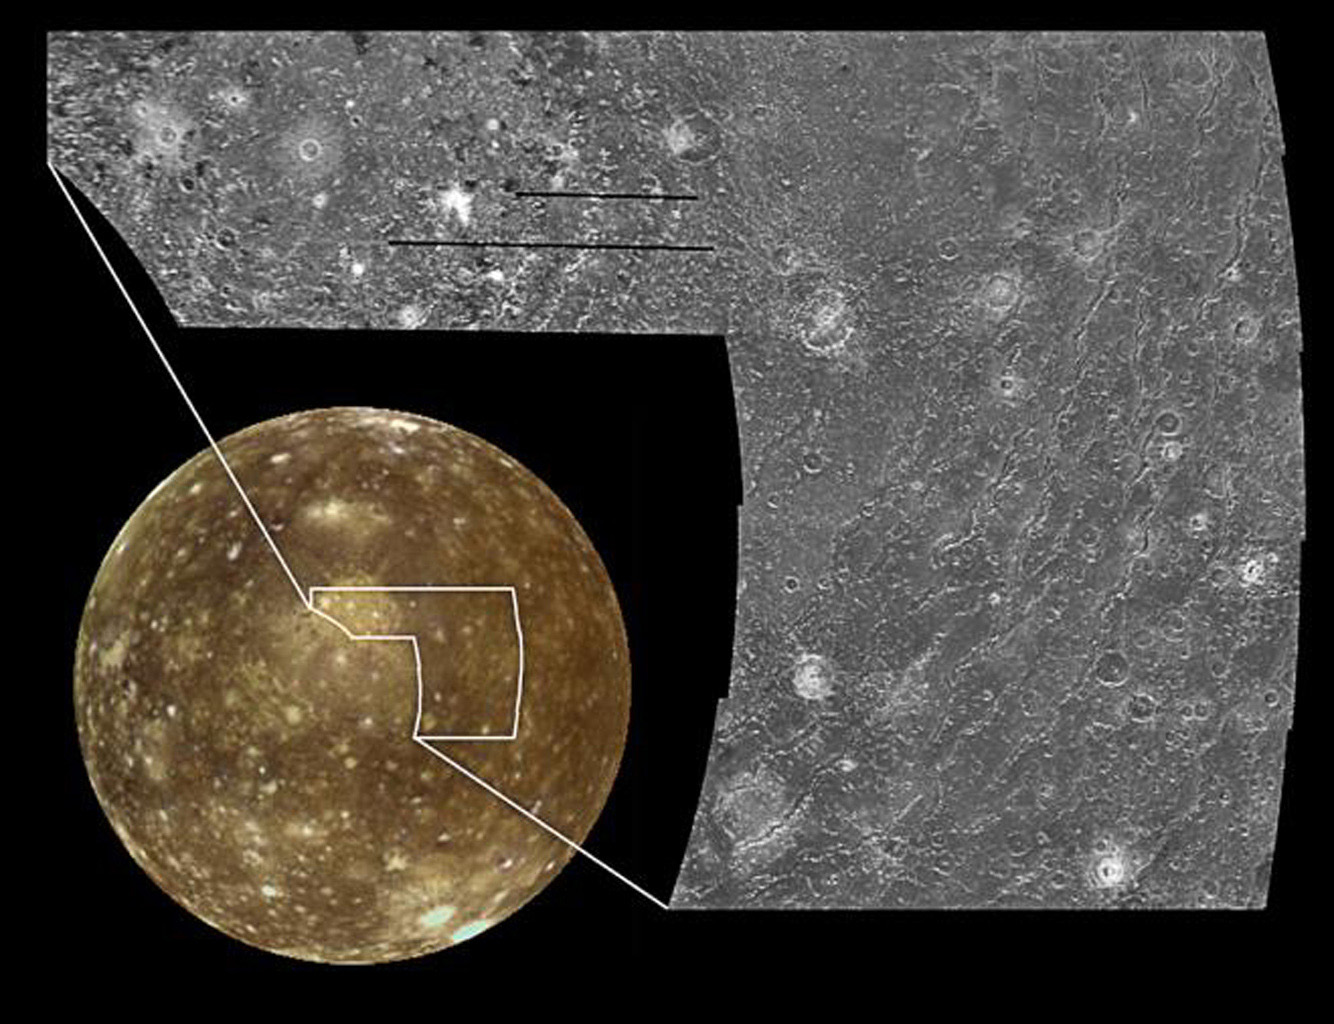 These images of Callisto, the outermost of the Galilean satellites of Jupiter, reveal a surface characterized by impact craters. The global view (lower left) is dominated by a large bulls-eye feature. Images captured by NASA's Galileo spacecraft.